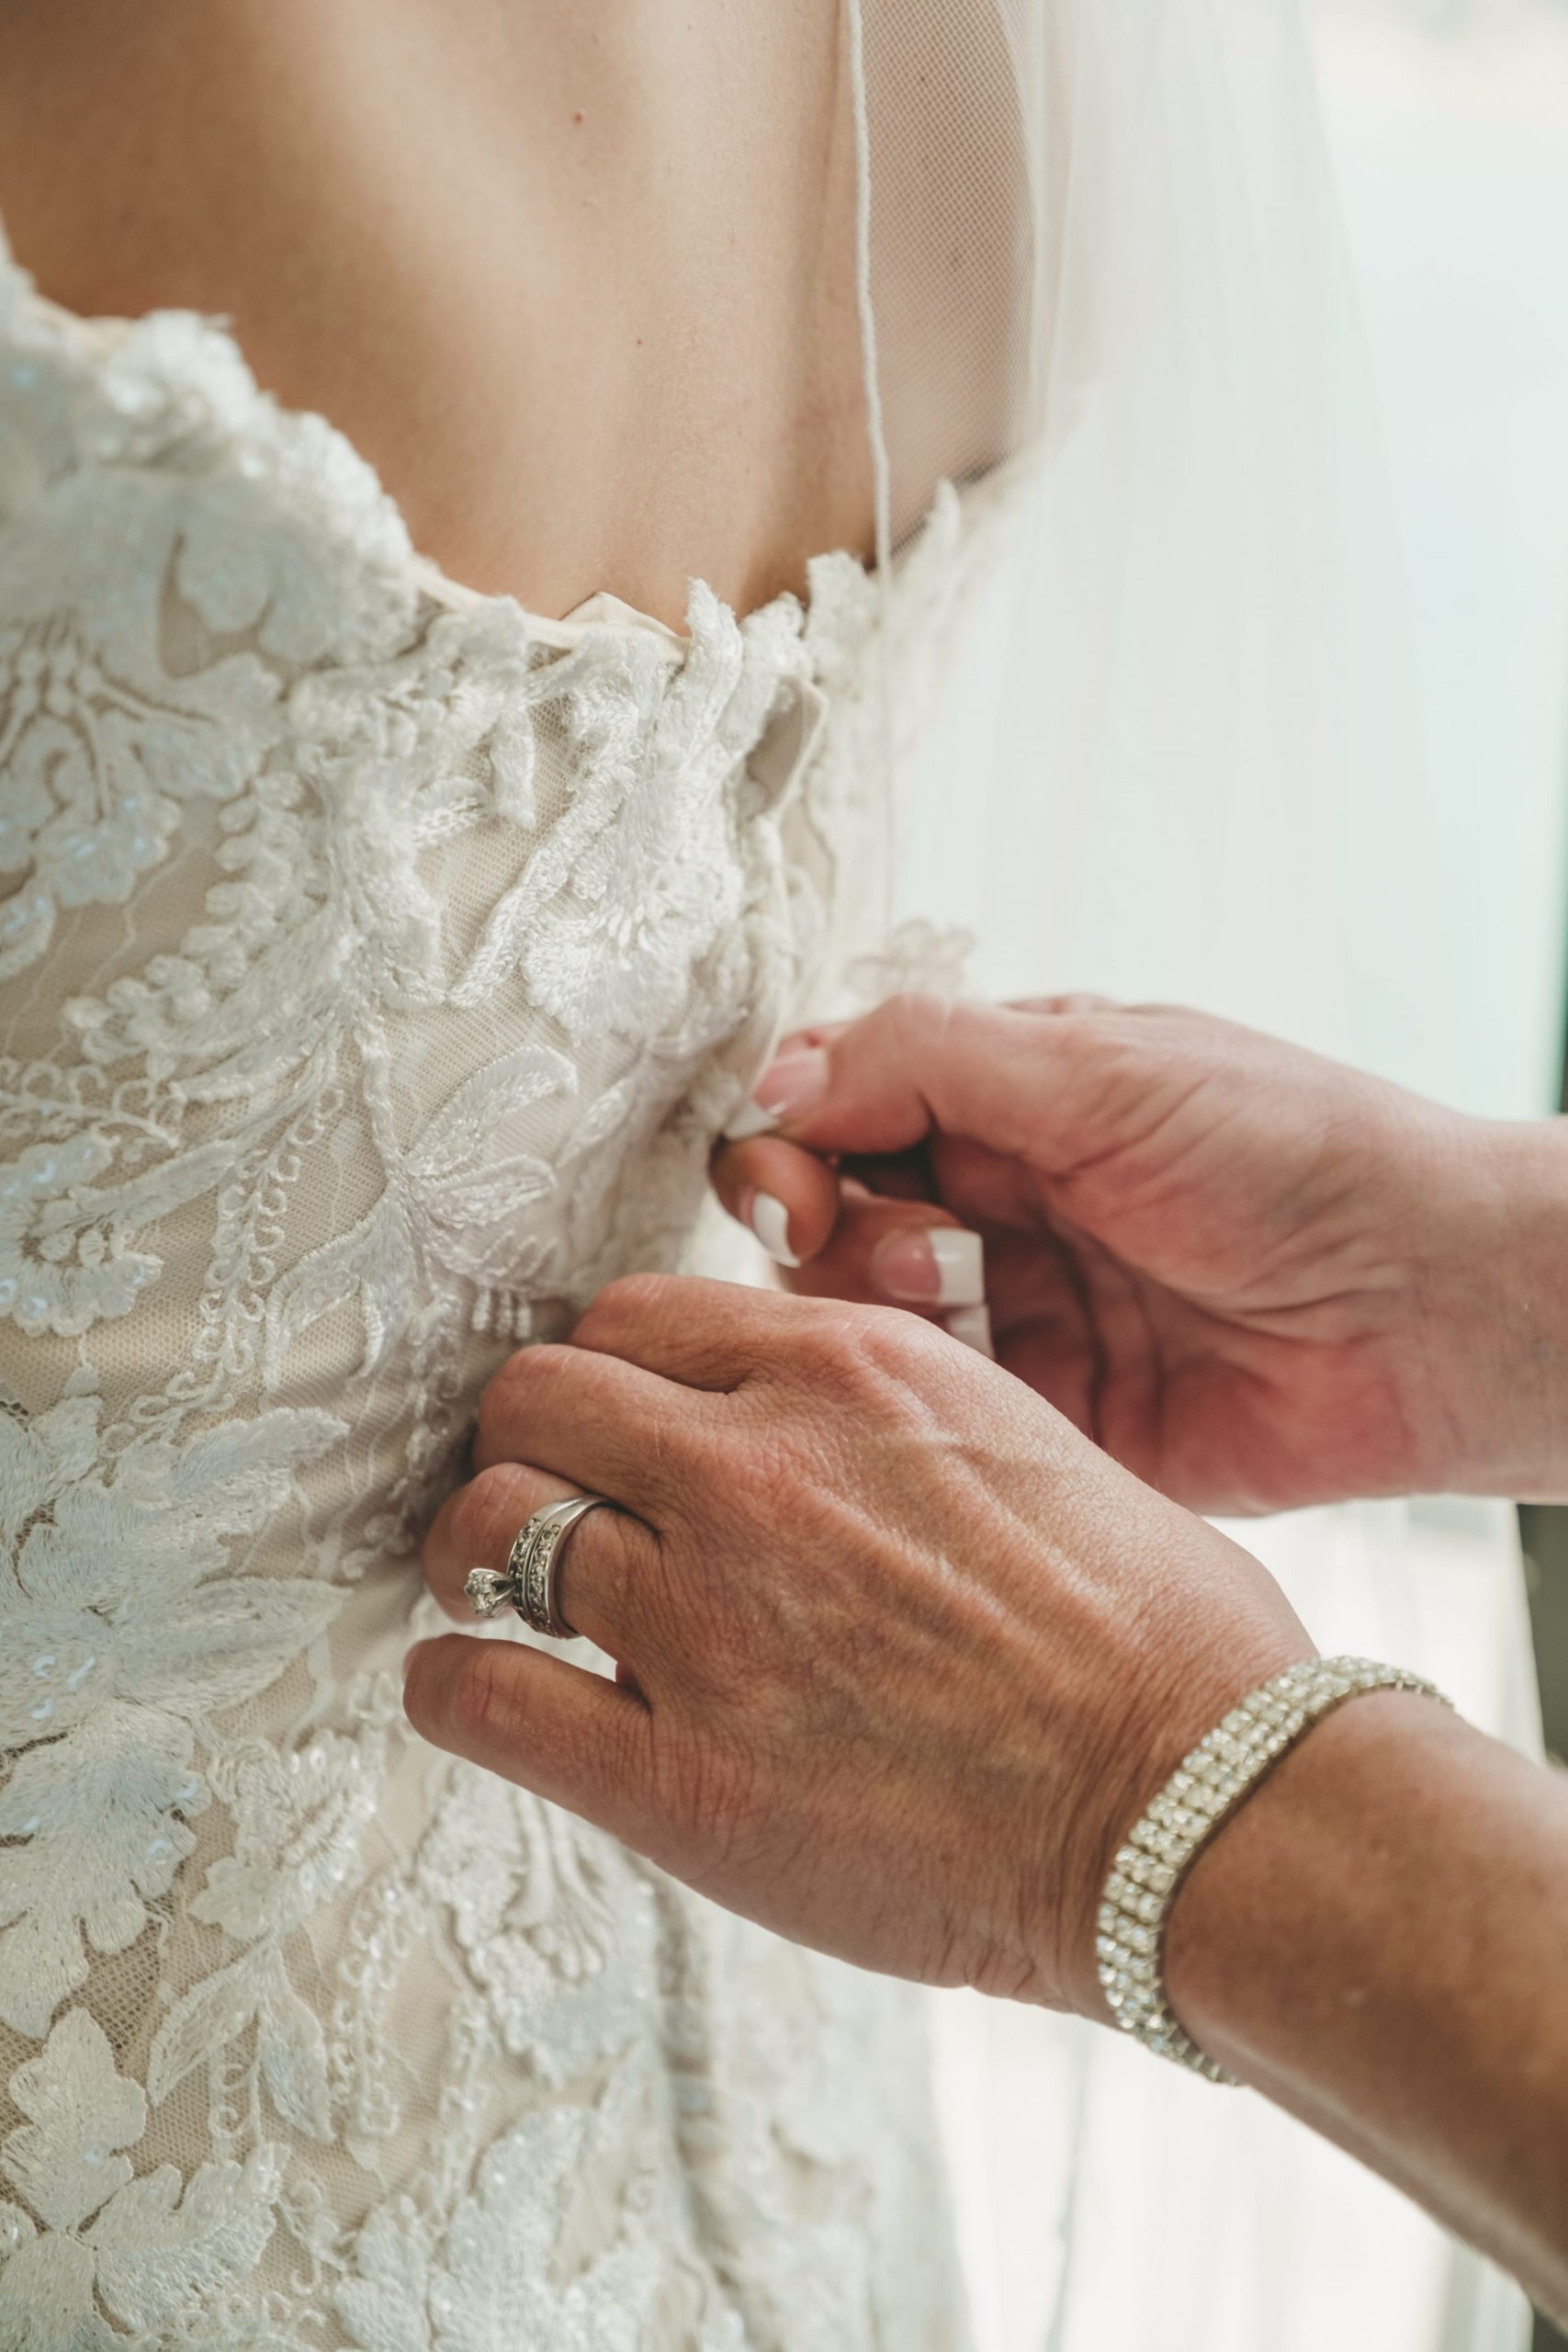 mother of bride zipping bride's gown